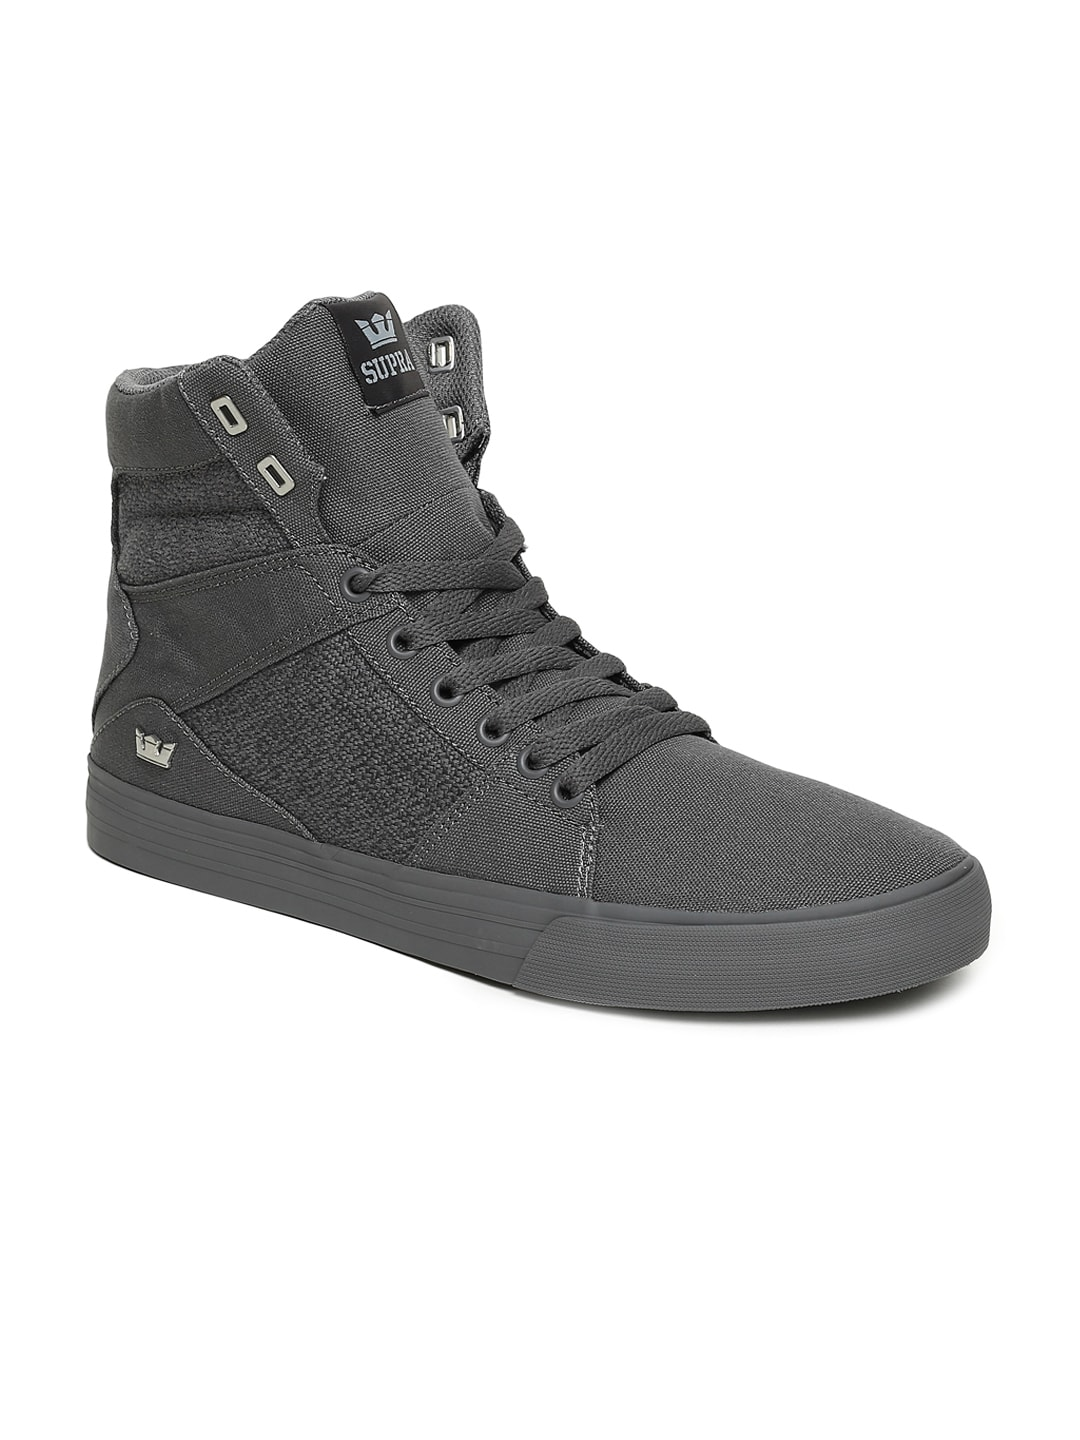 Supra Shoes - Buy Supra Shoes   Sneakers Online in India  60bd991ee1